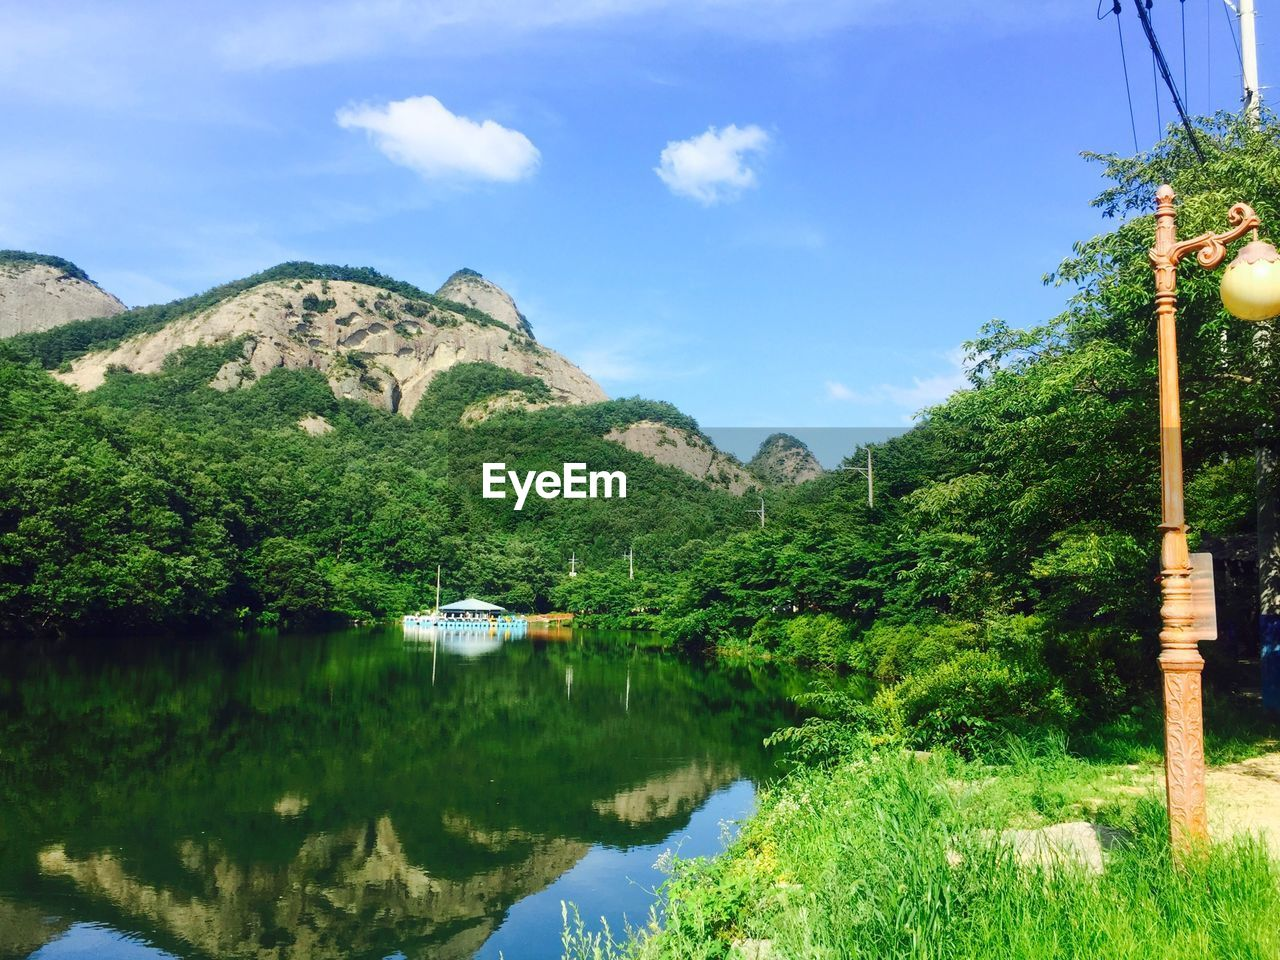 plant, mountain, reflection, water, tree, sky, beauty in nature, nature, cloud - sky, tranquility, tranquil scene, scenics - nature, day, no people, lake, green color, growth, mountain range, waterfront, outdoors